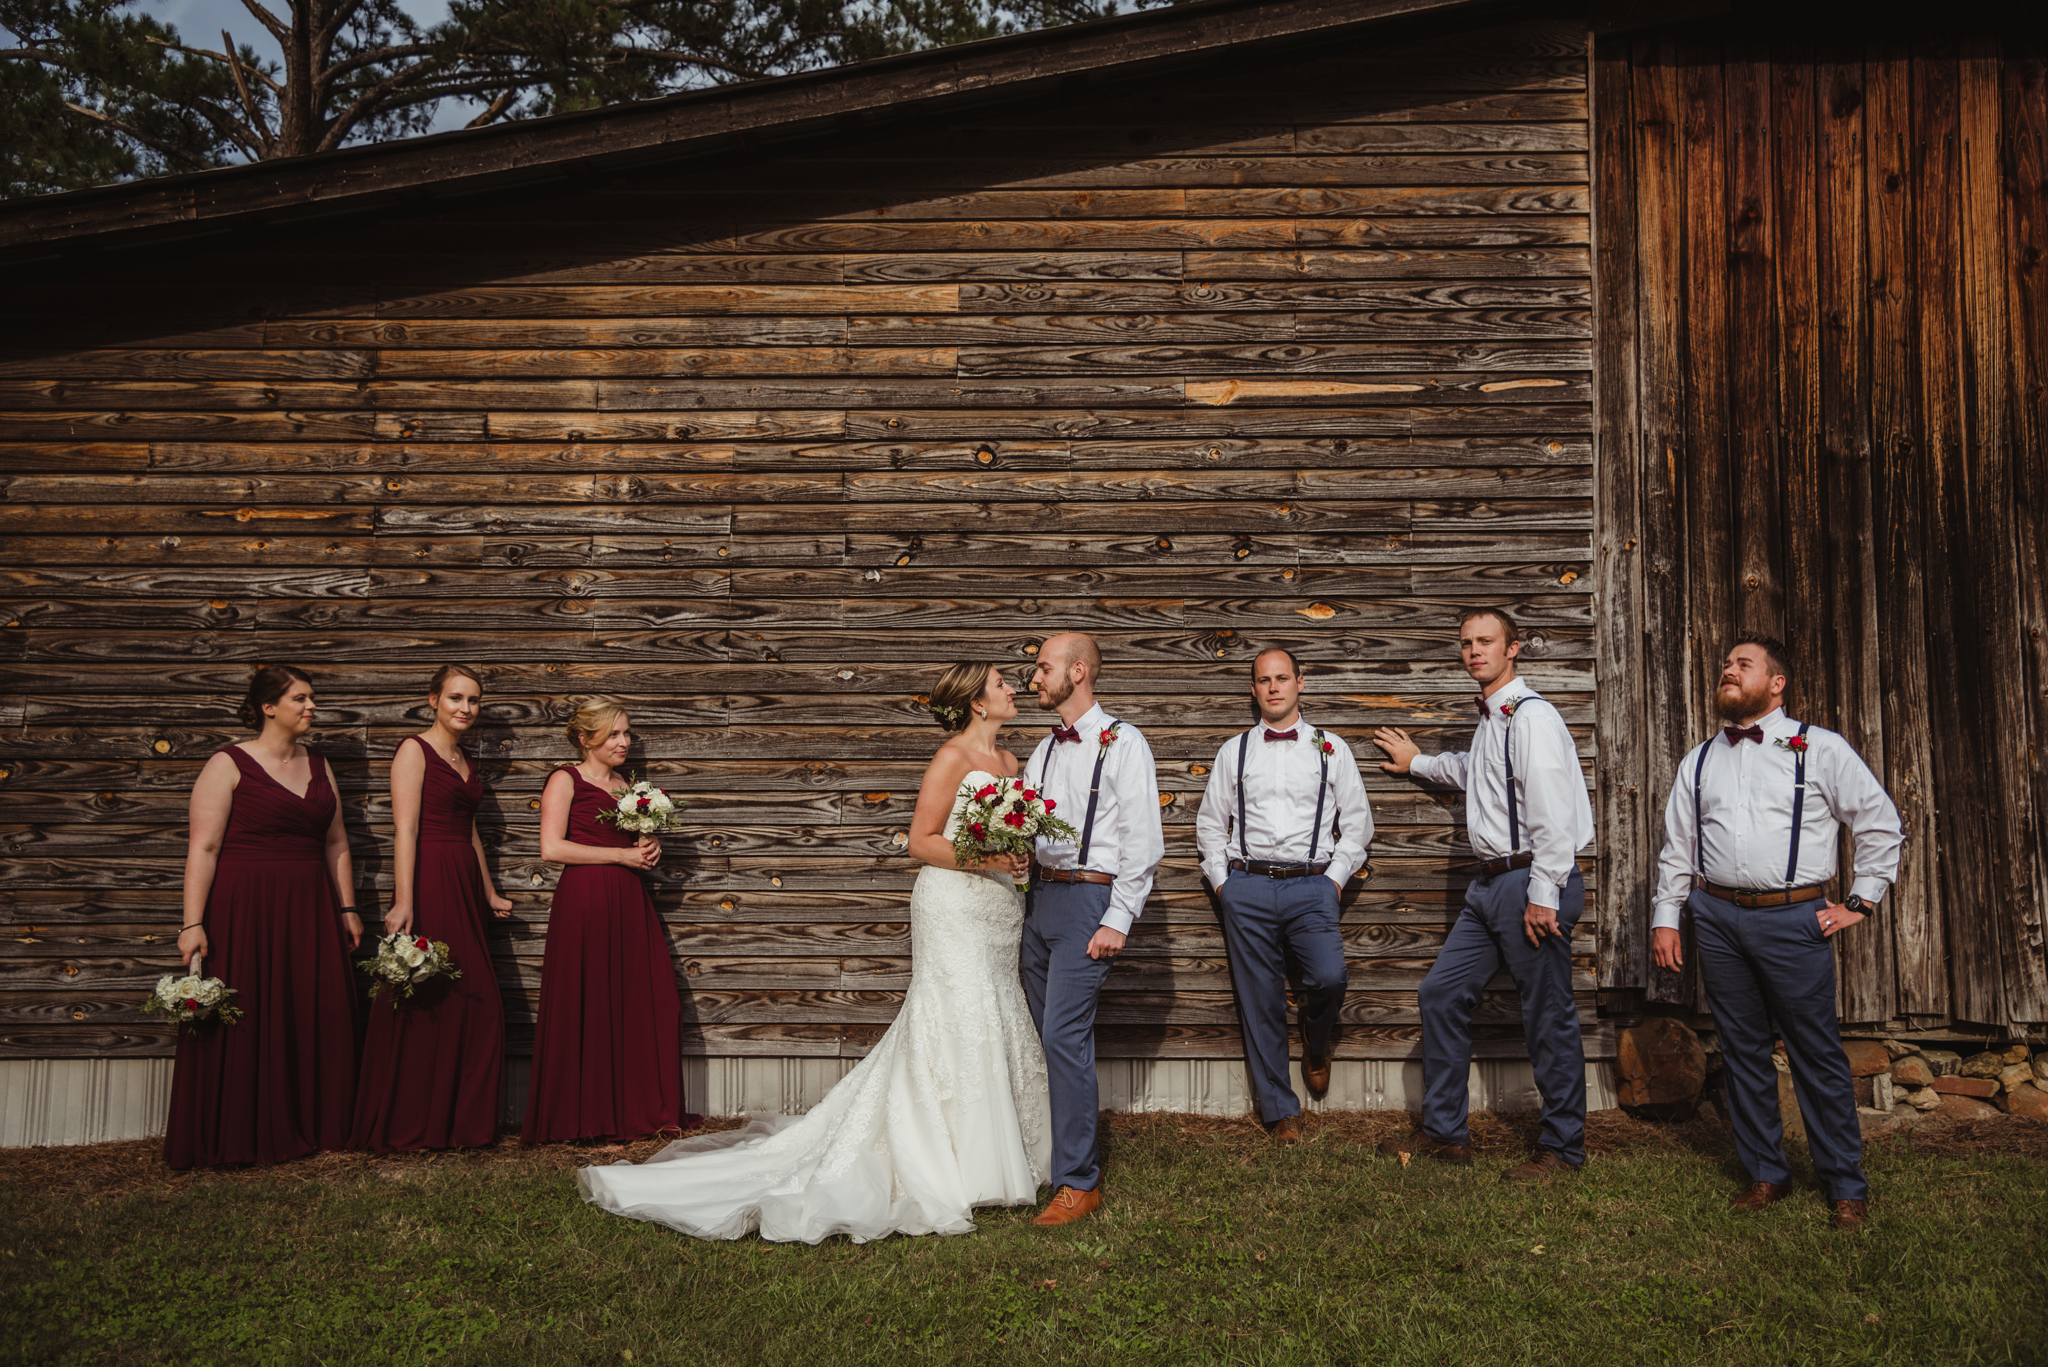 Raleigh-wedding-photographer-bridal-party-barn-cedar-grove-acres-rose-trail-images.jpg